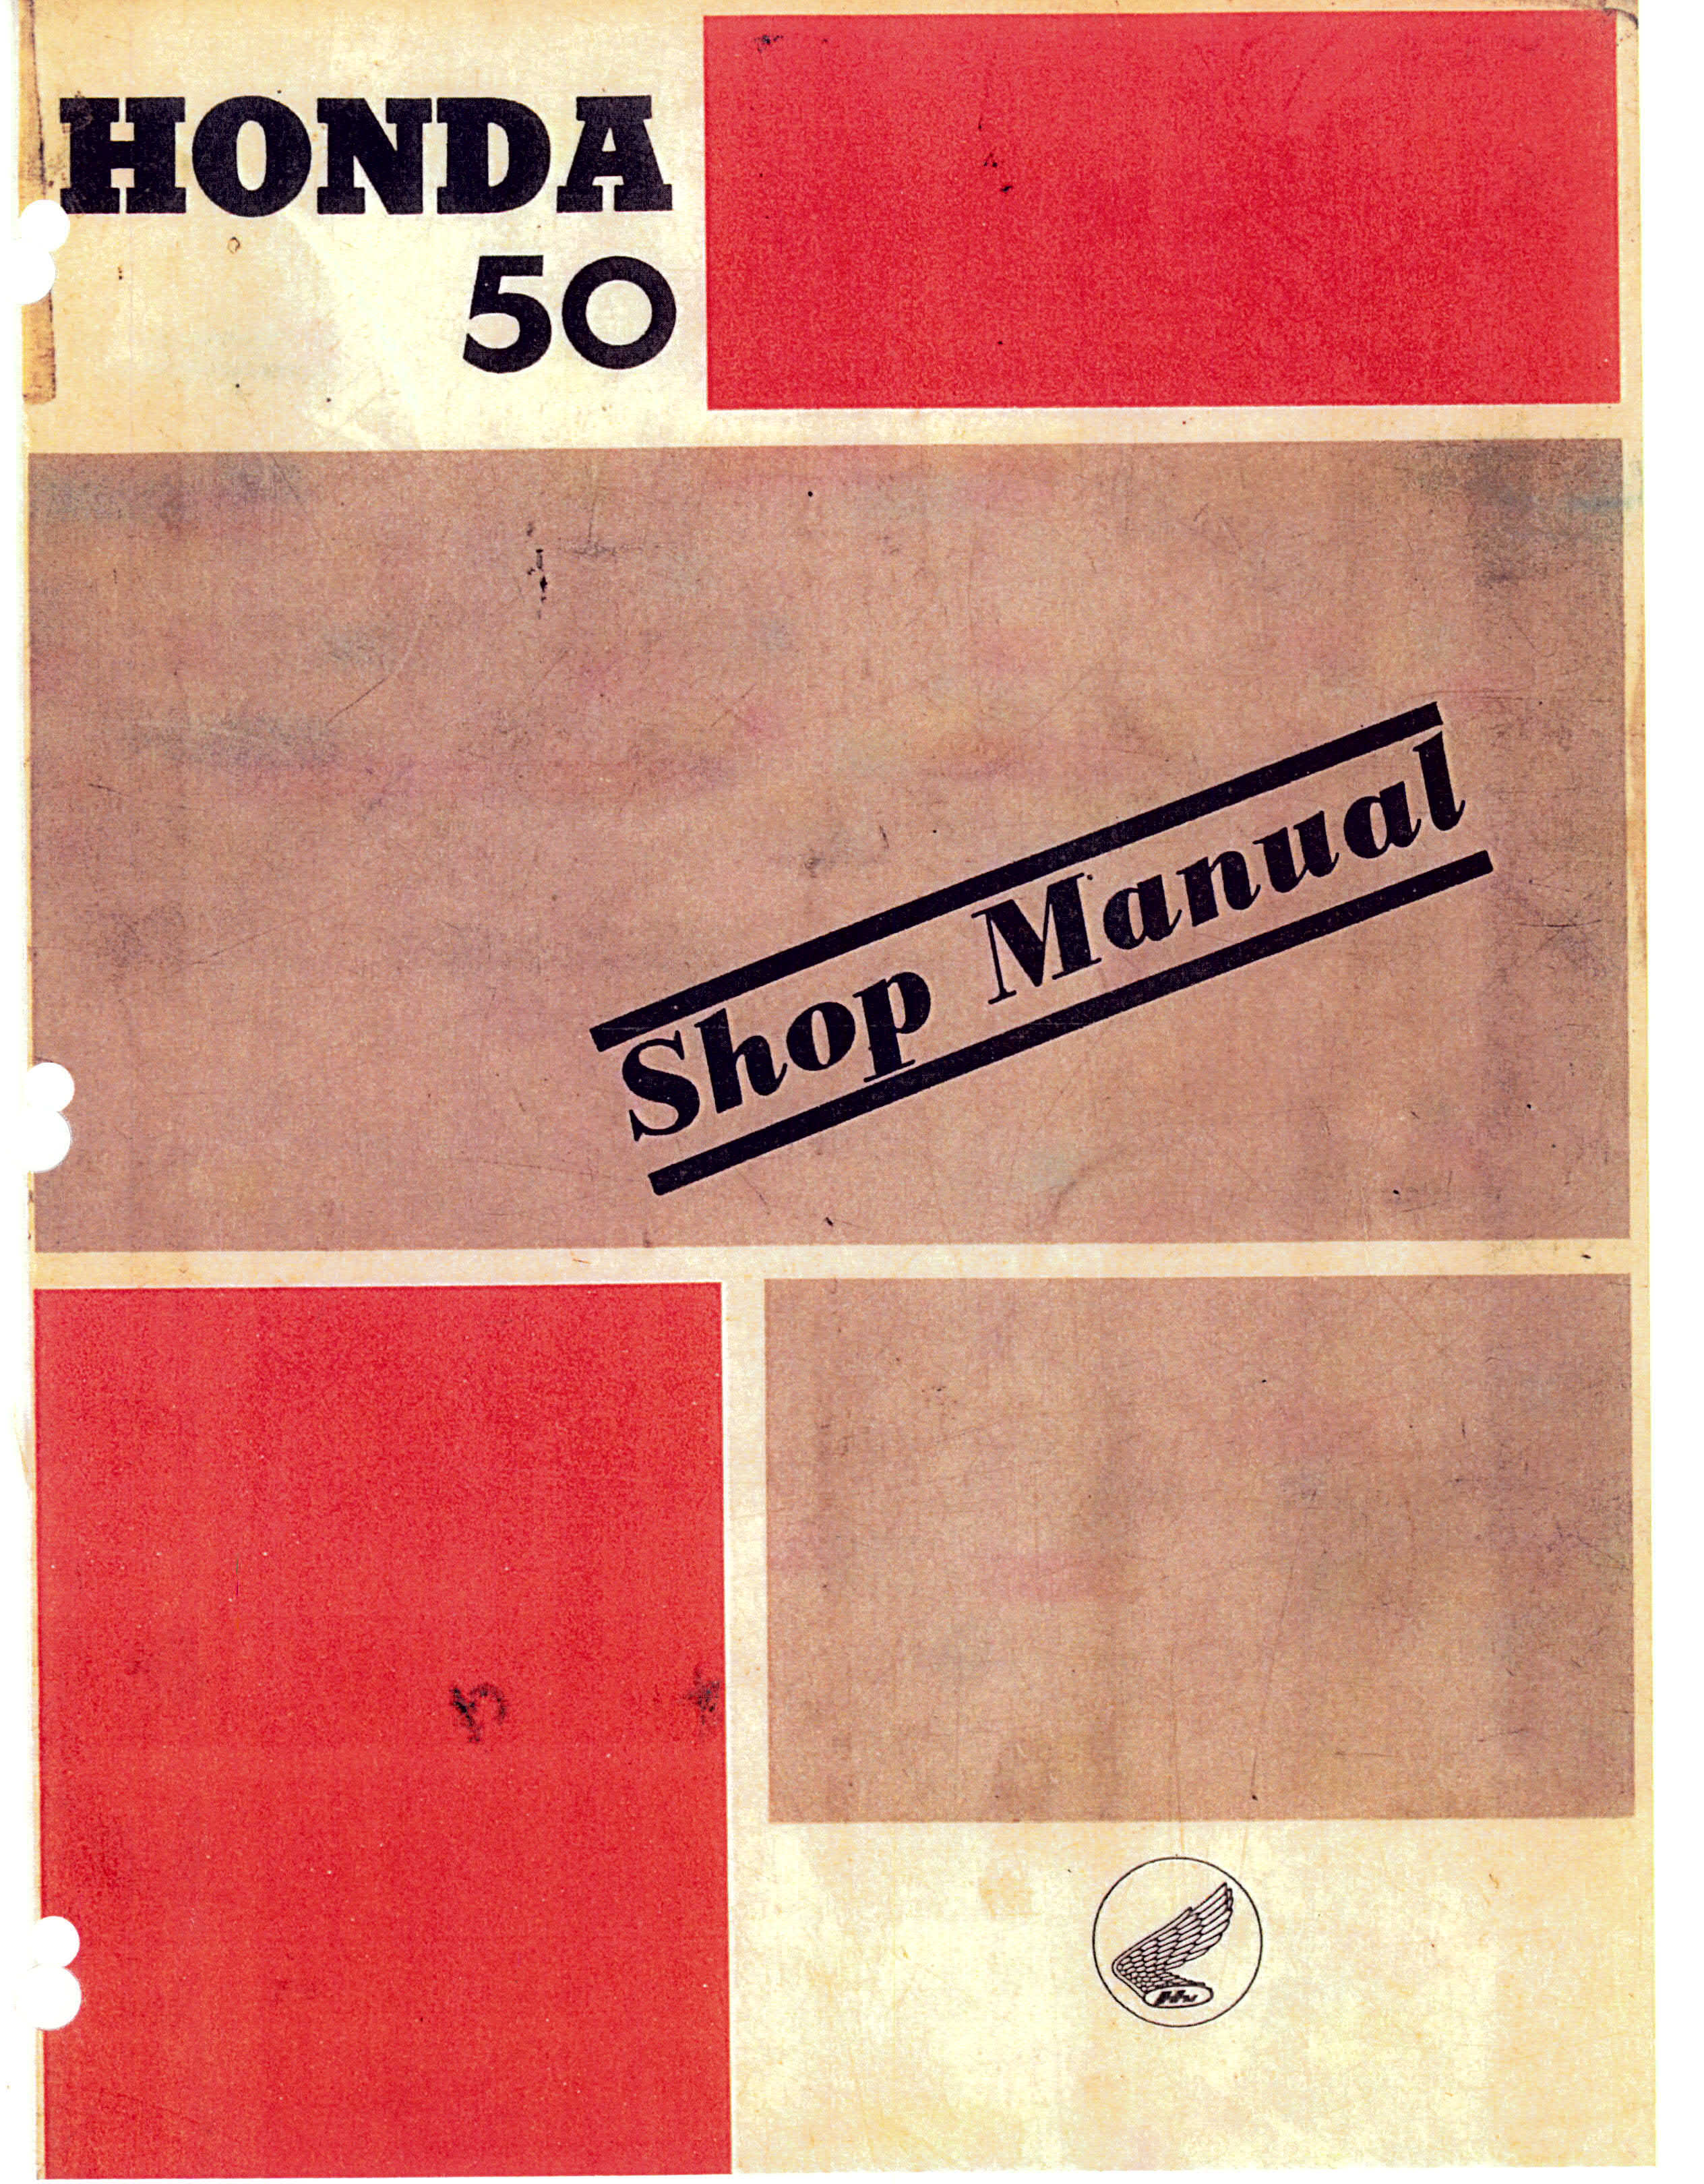 Workshop Manuals All The Data For Your Honda 1983 Volkswagen Vanagon Repair Manual C100 1961